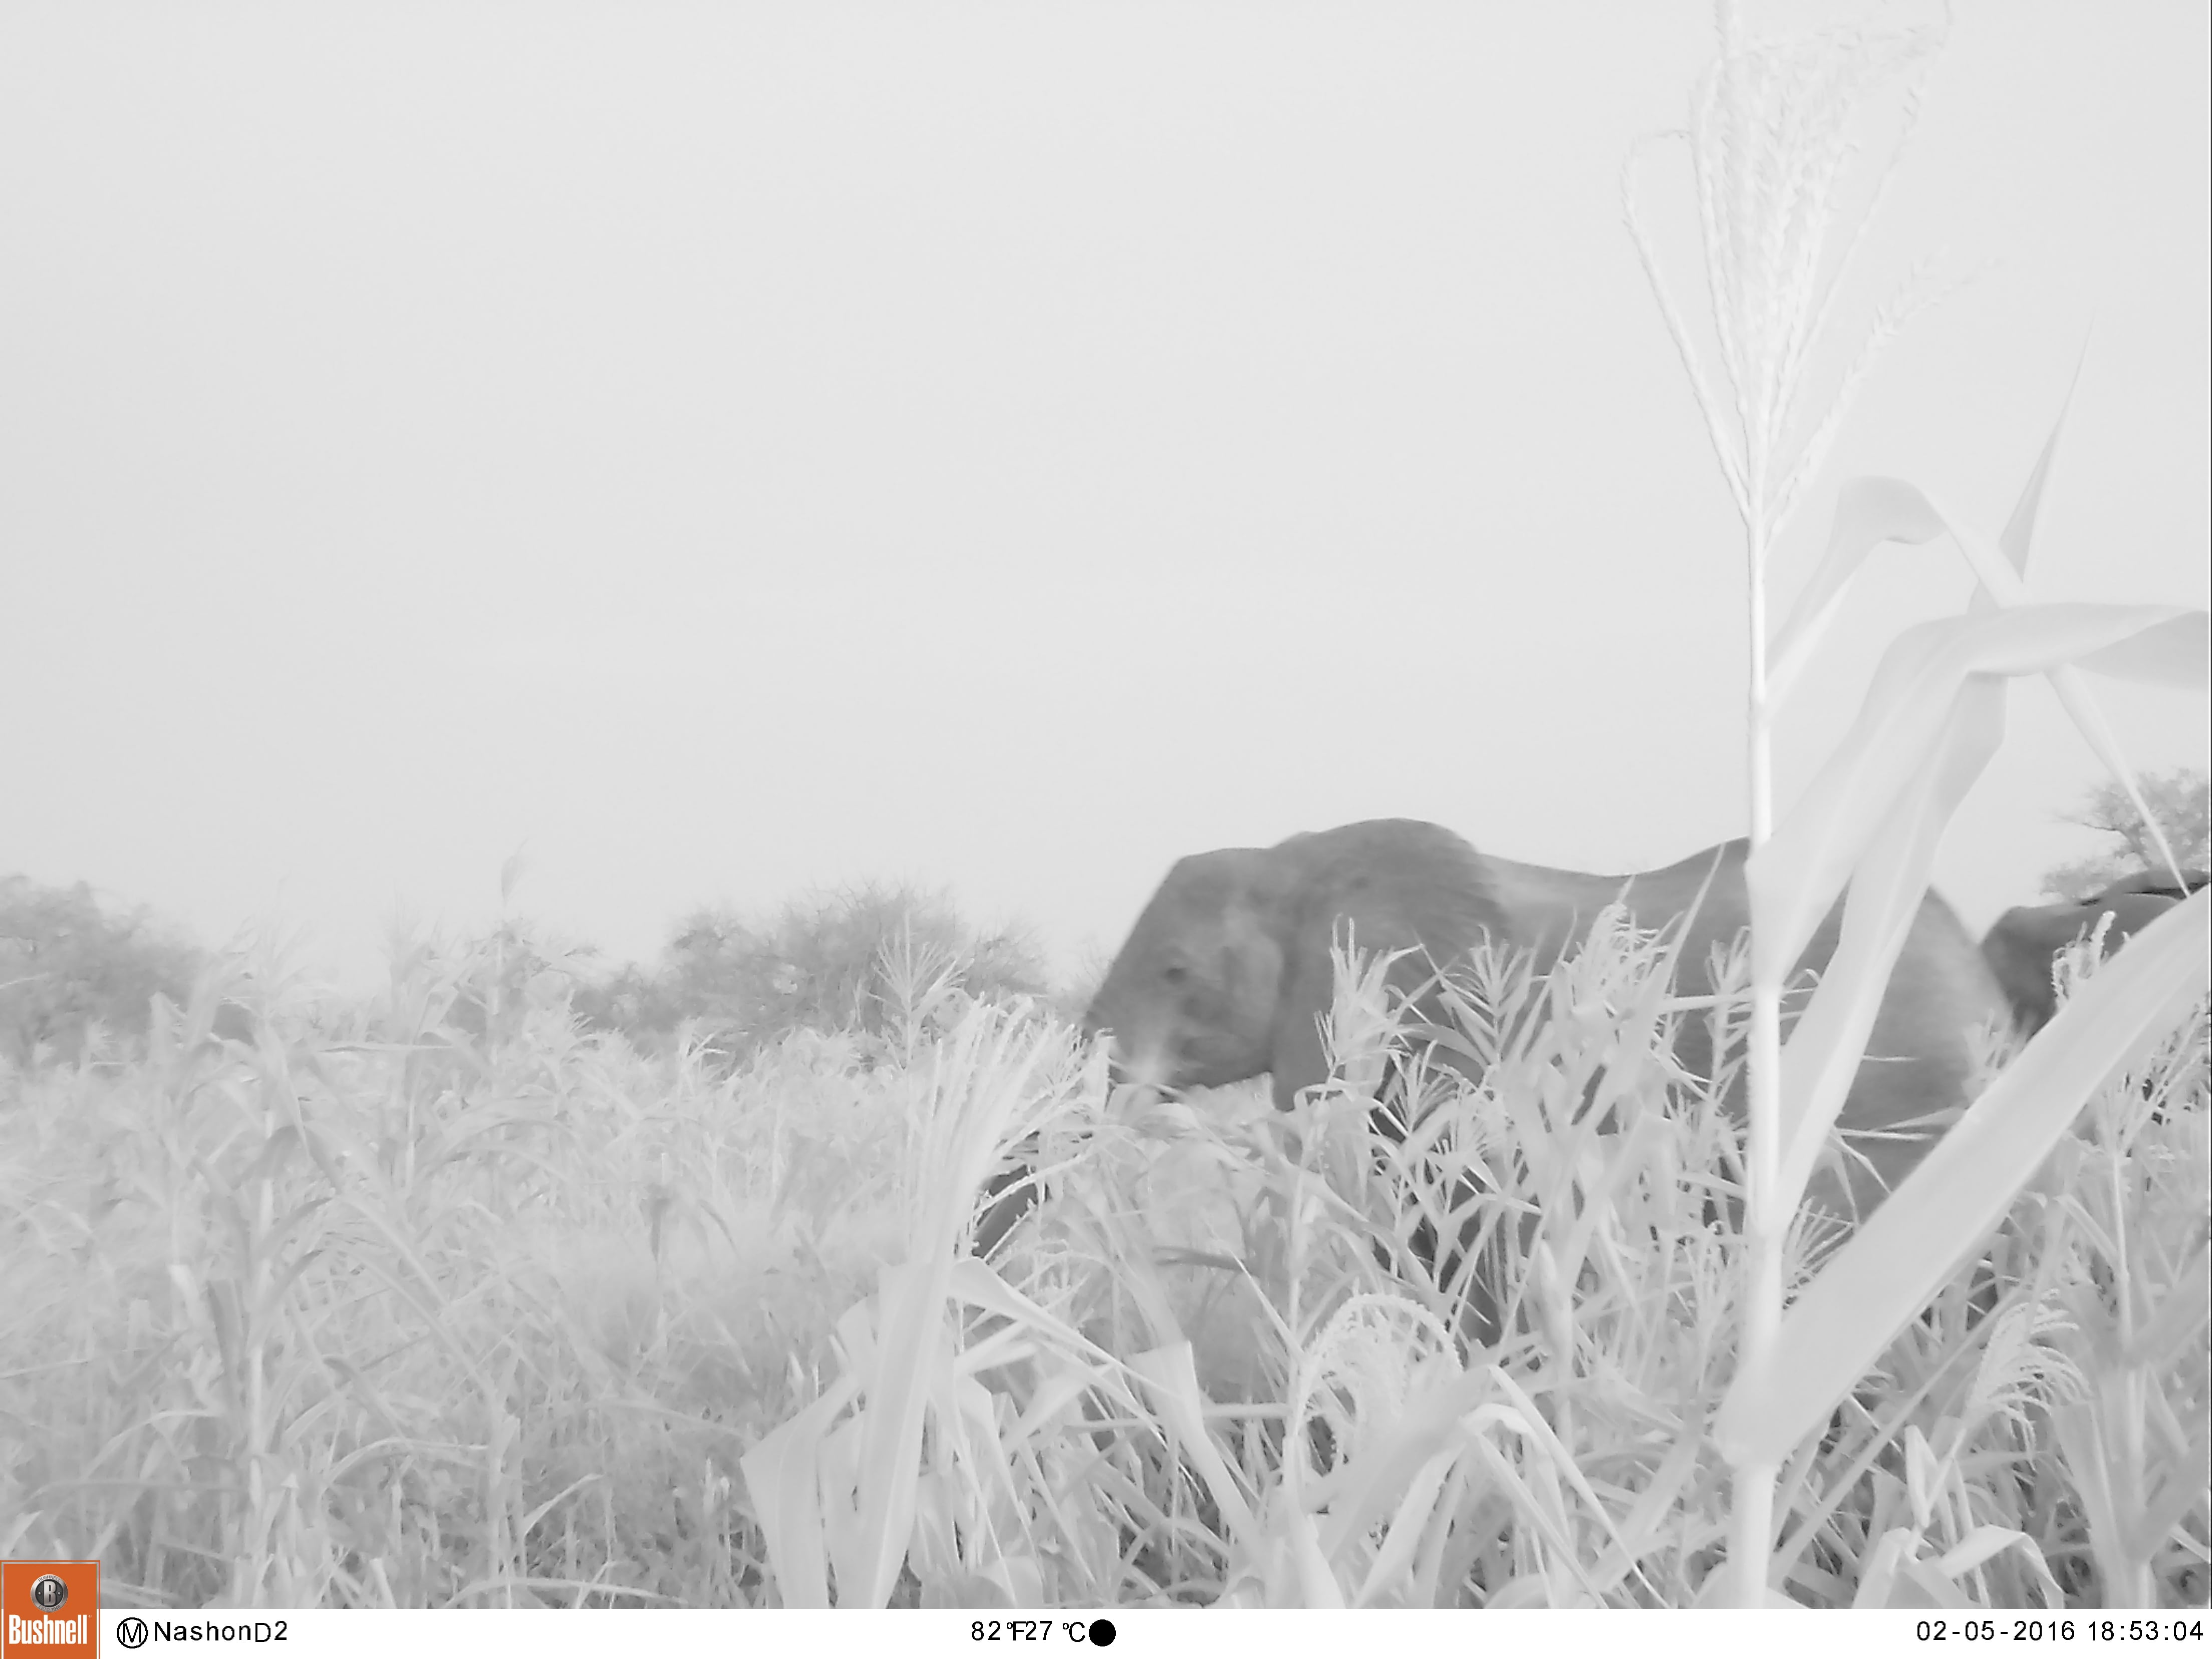 A spectacularly clear picture of an elephant among the maize plants